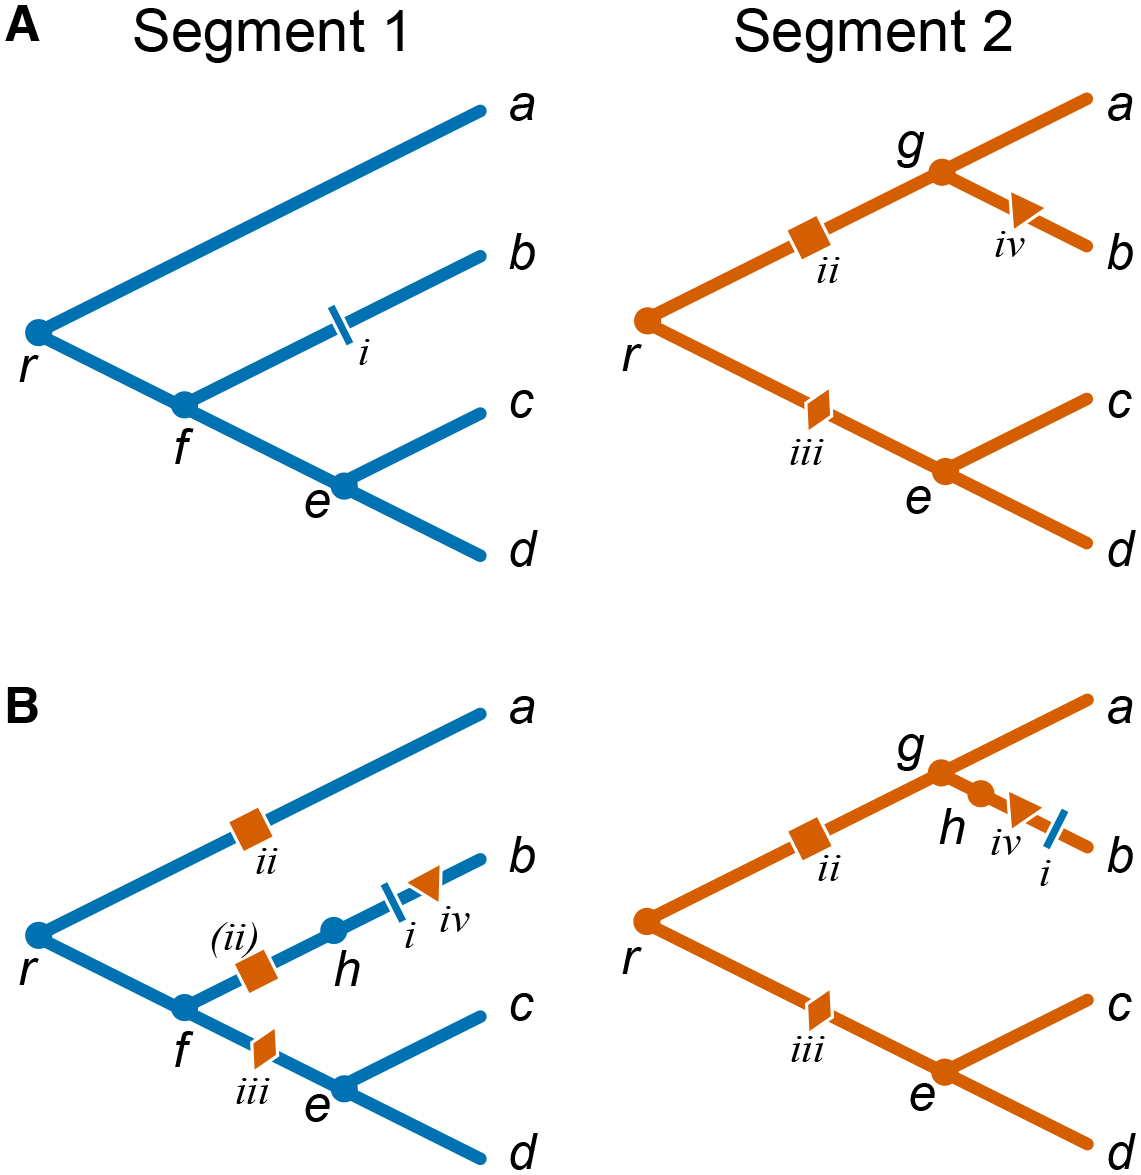 Mapping mutations between segments in the presence of reassortments.